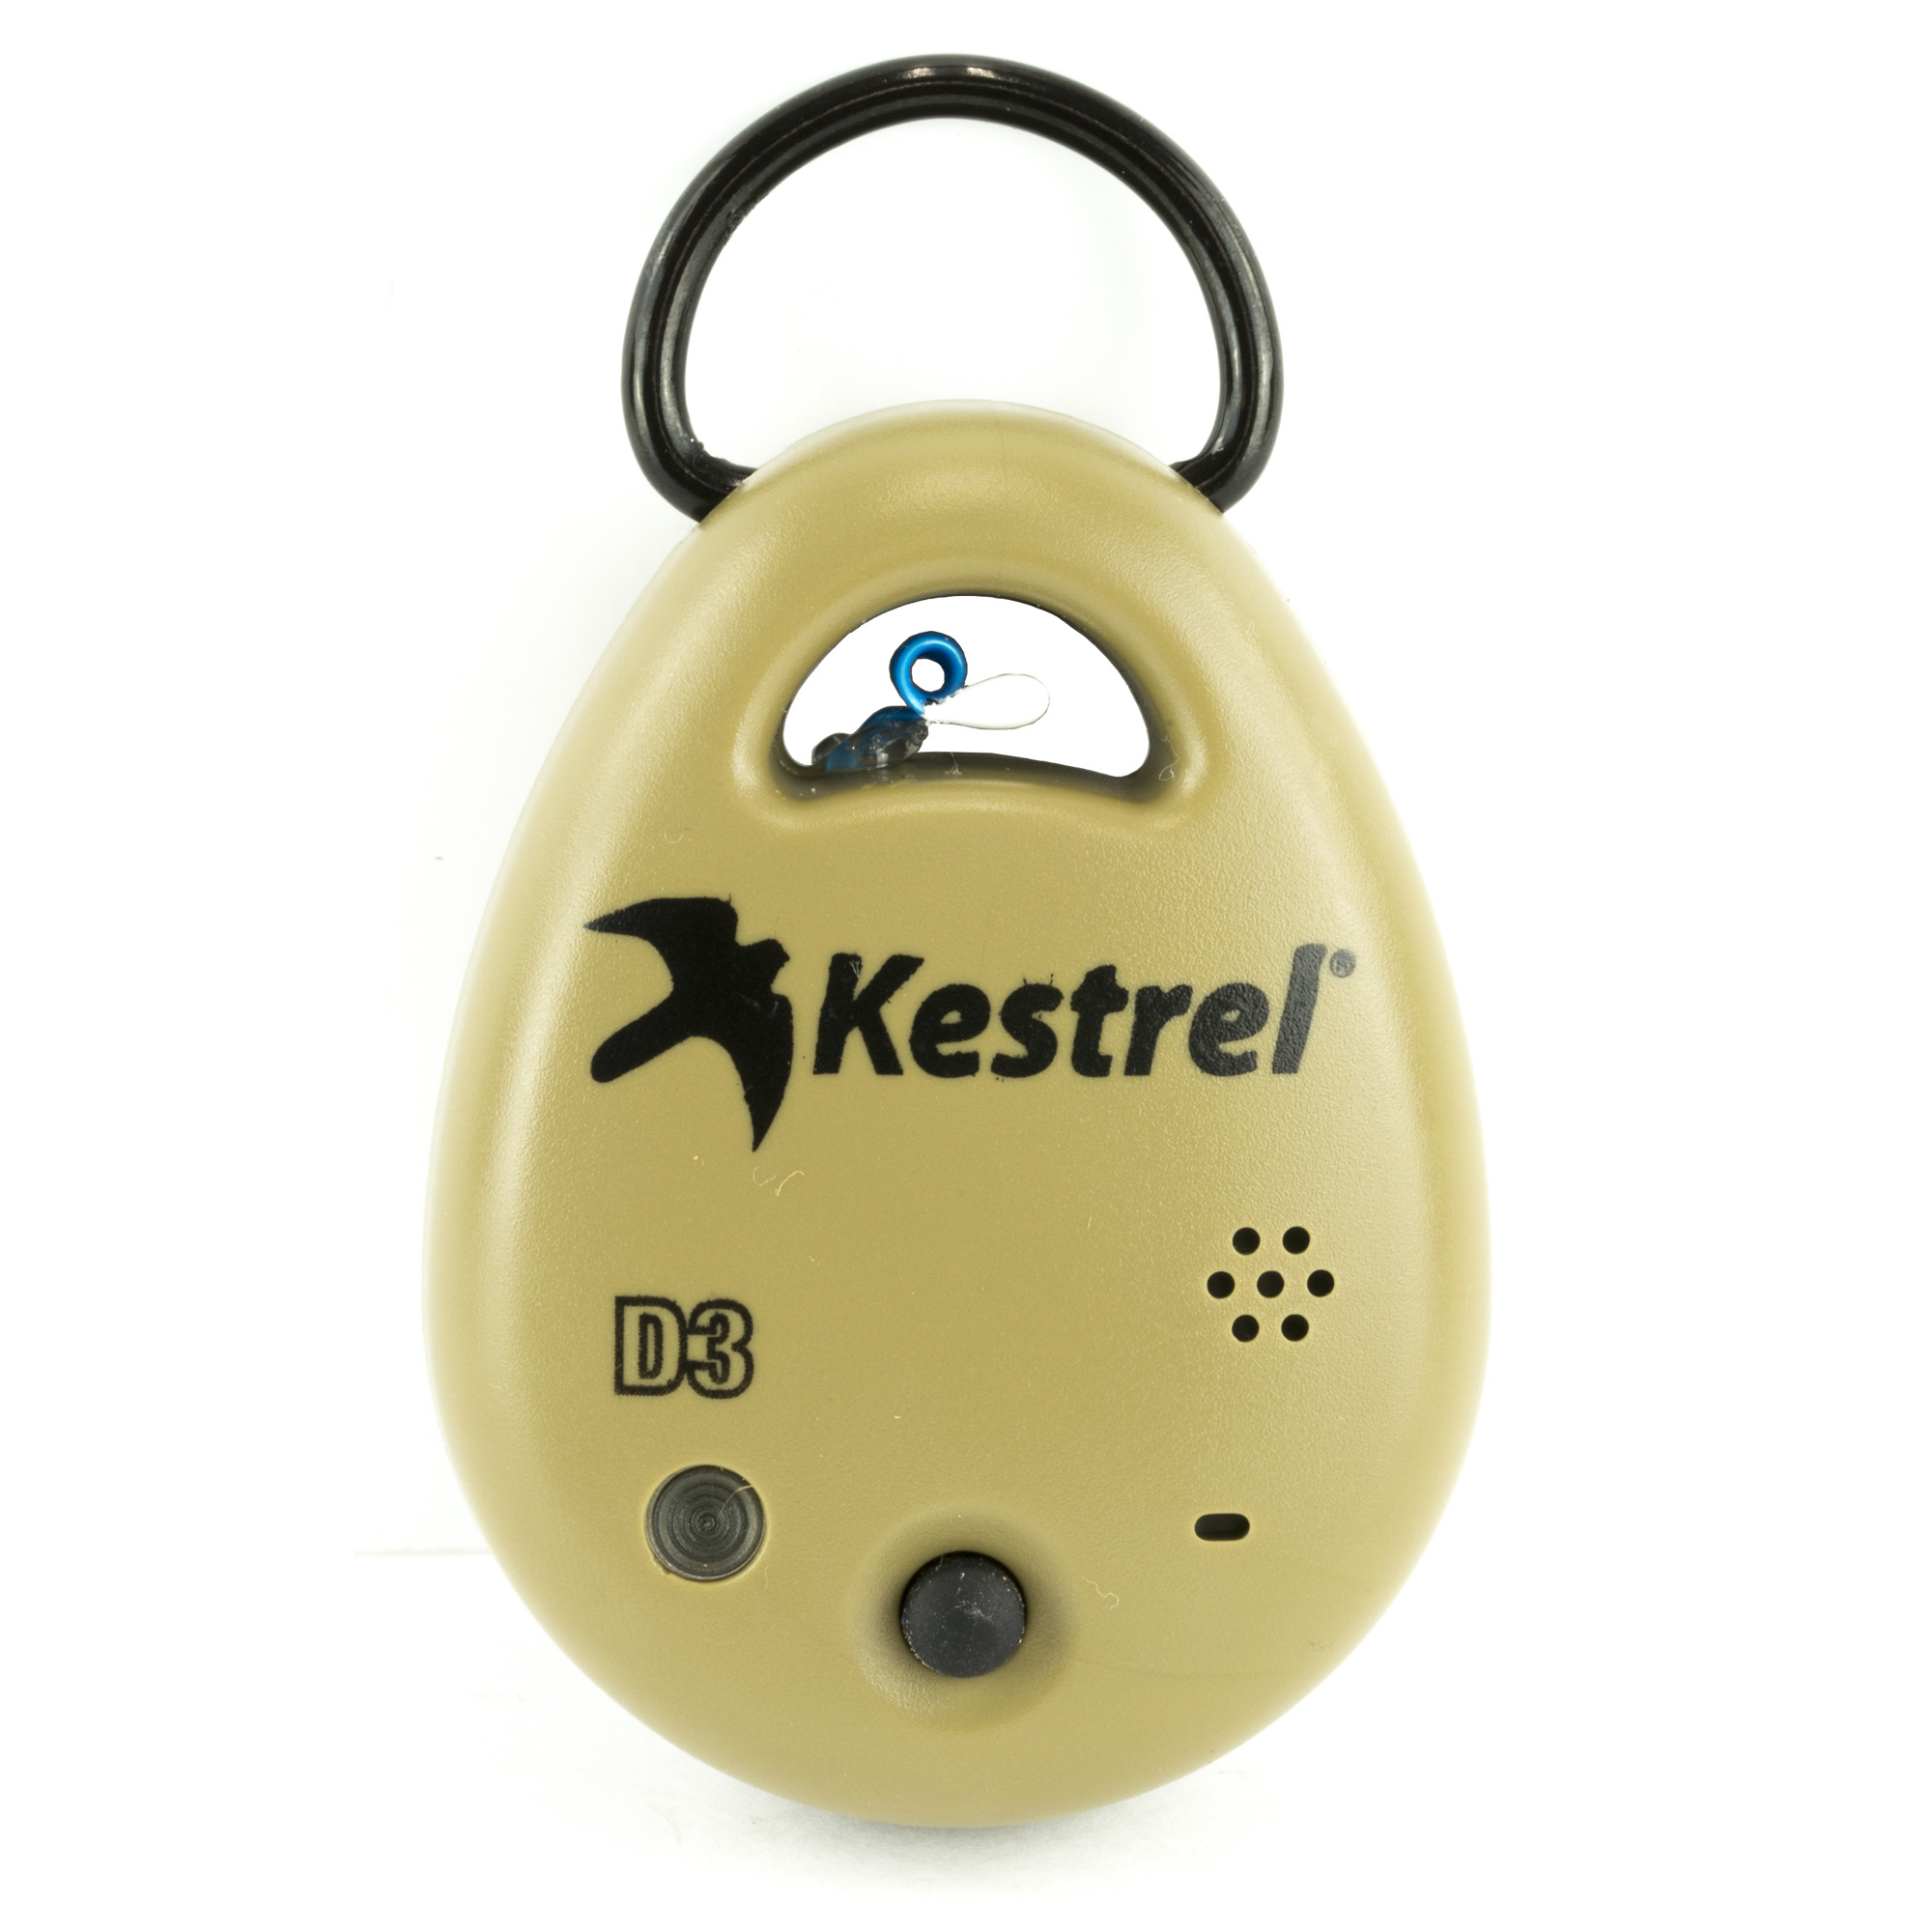 Kestrel Drop D3 Temp/hum/pressure Tn